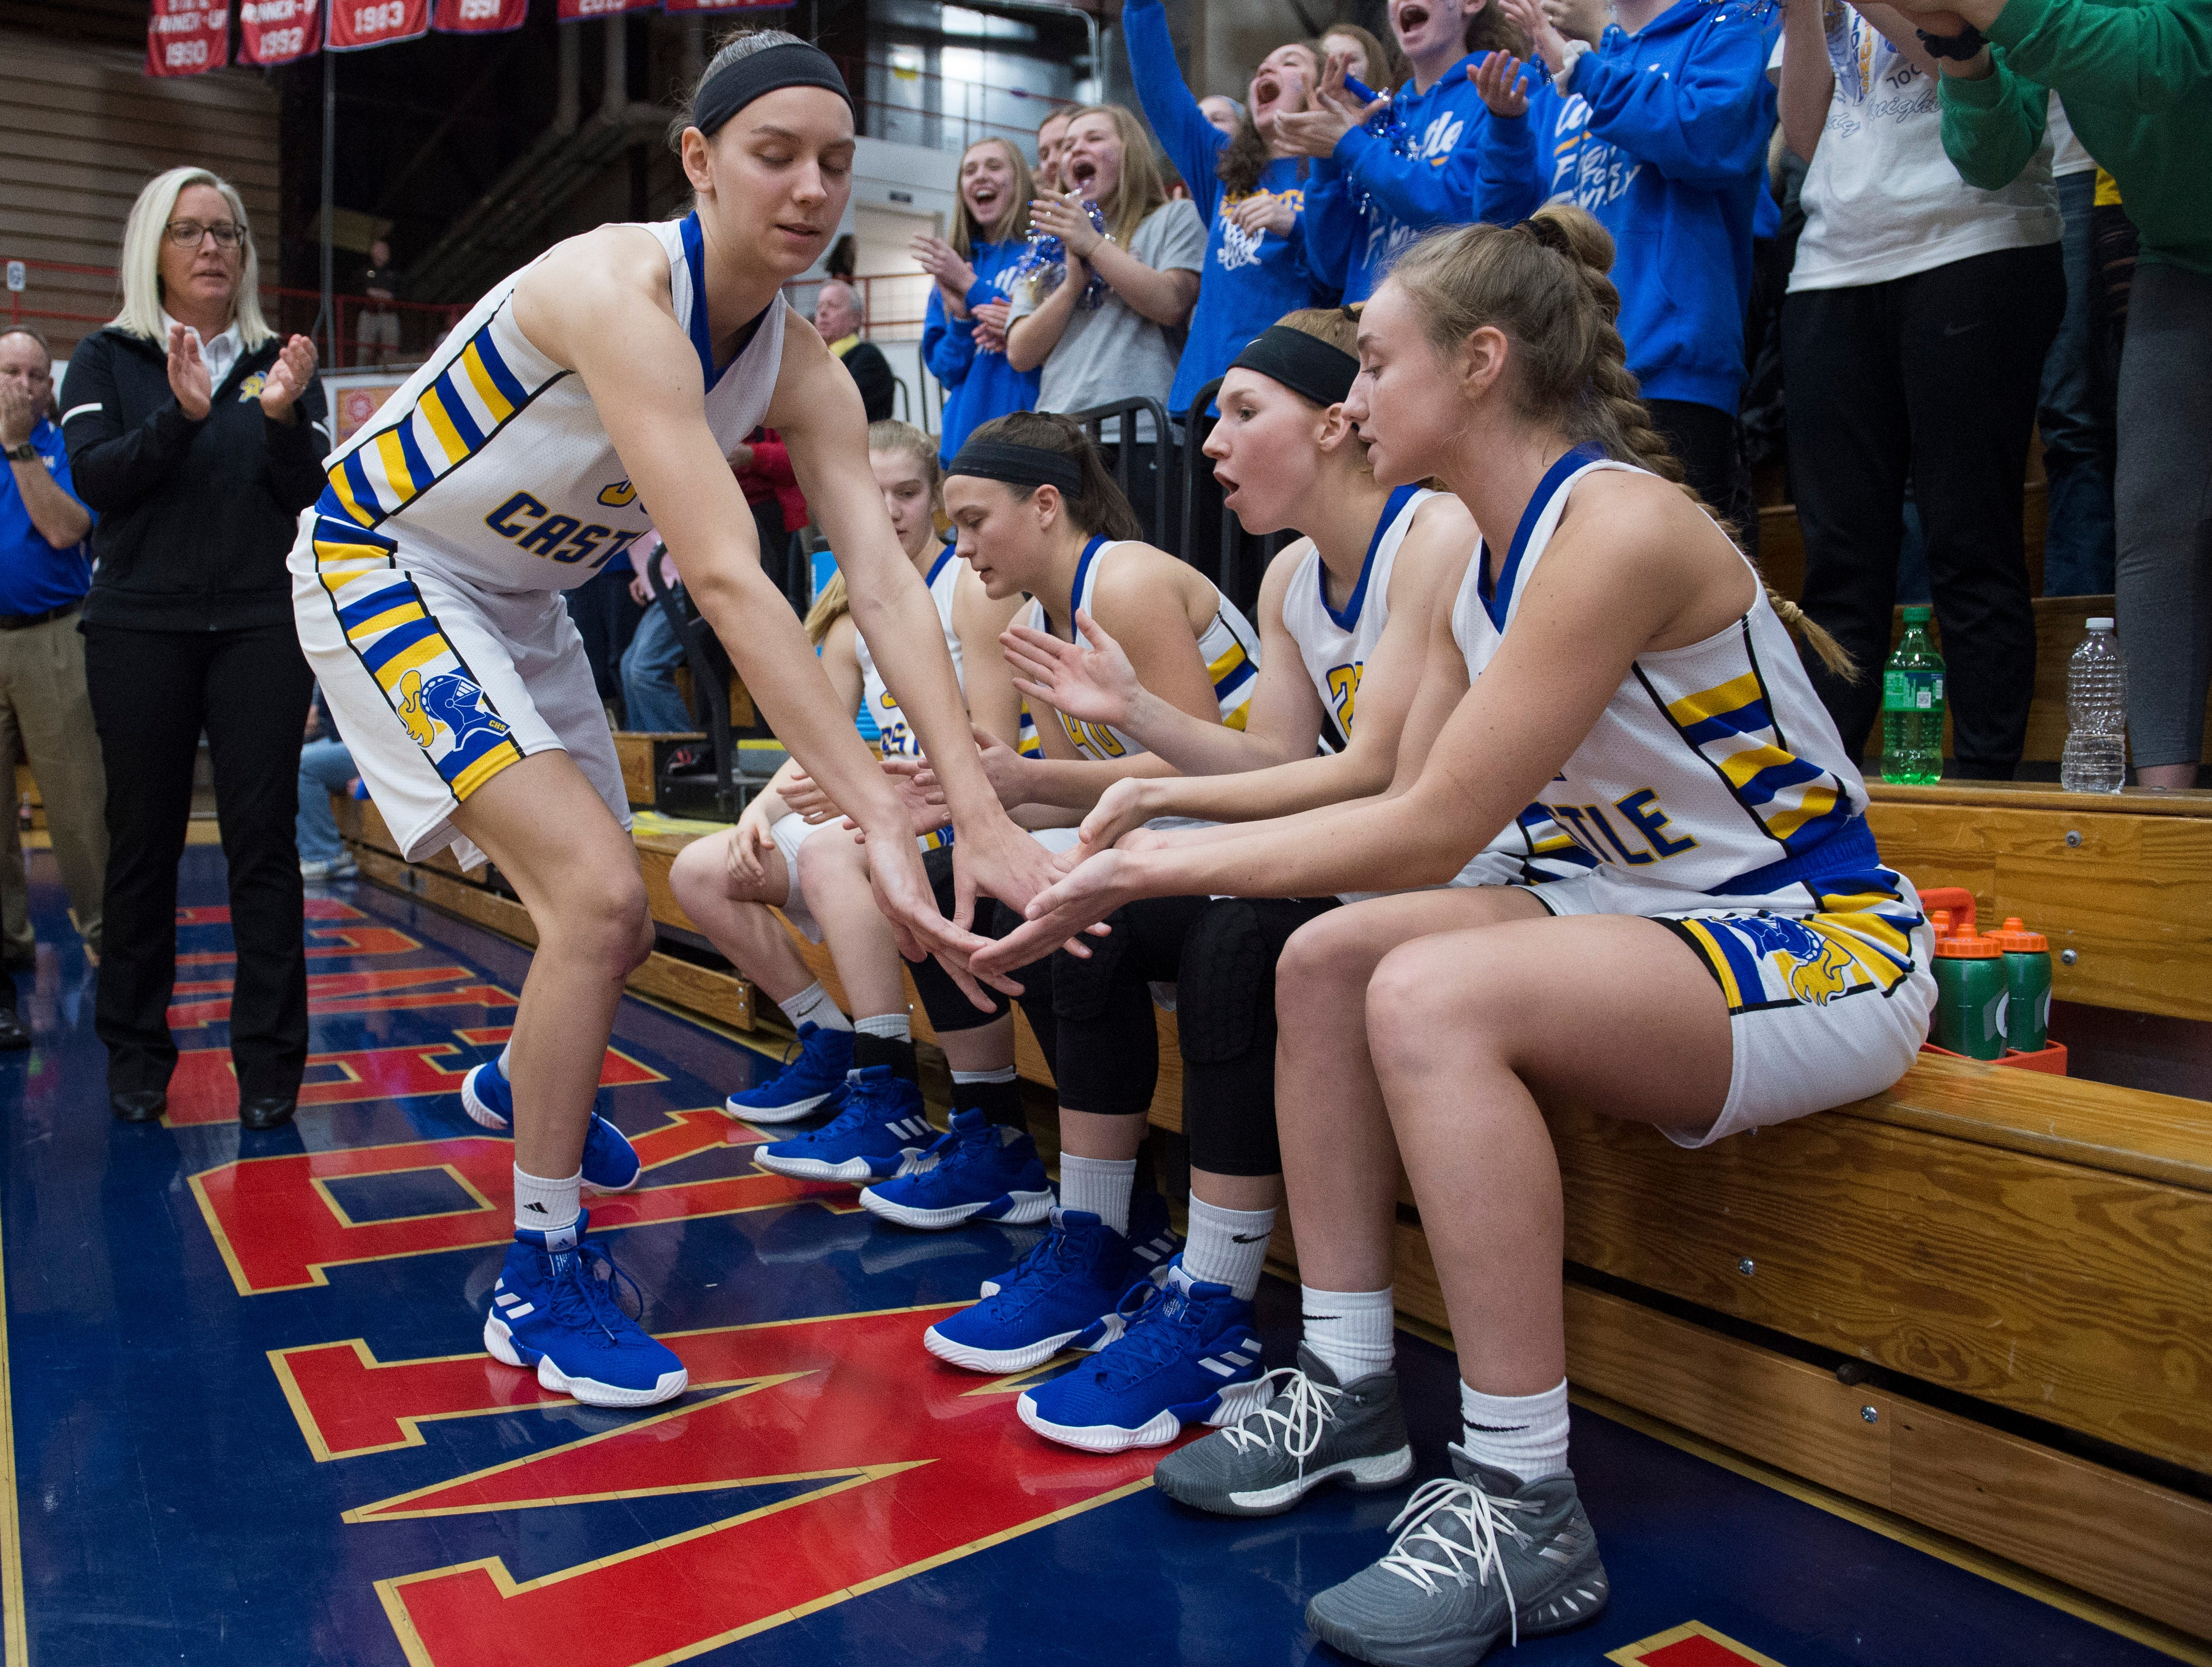 Castle's Jessica Nunge (30) slaps hands with teammates as she is called to the court before the  IHSAA Girls Basketball Class 4A Regional Championship game against the Bedford North Lawrence Lady Stars at the Stars Field House in Bedford, Ind. Saturday, Feb. 9, 2019.